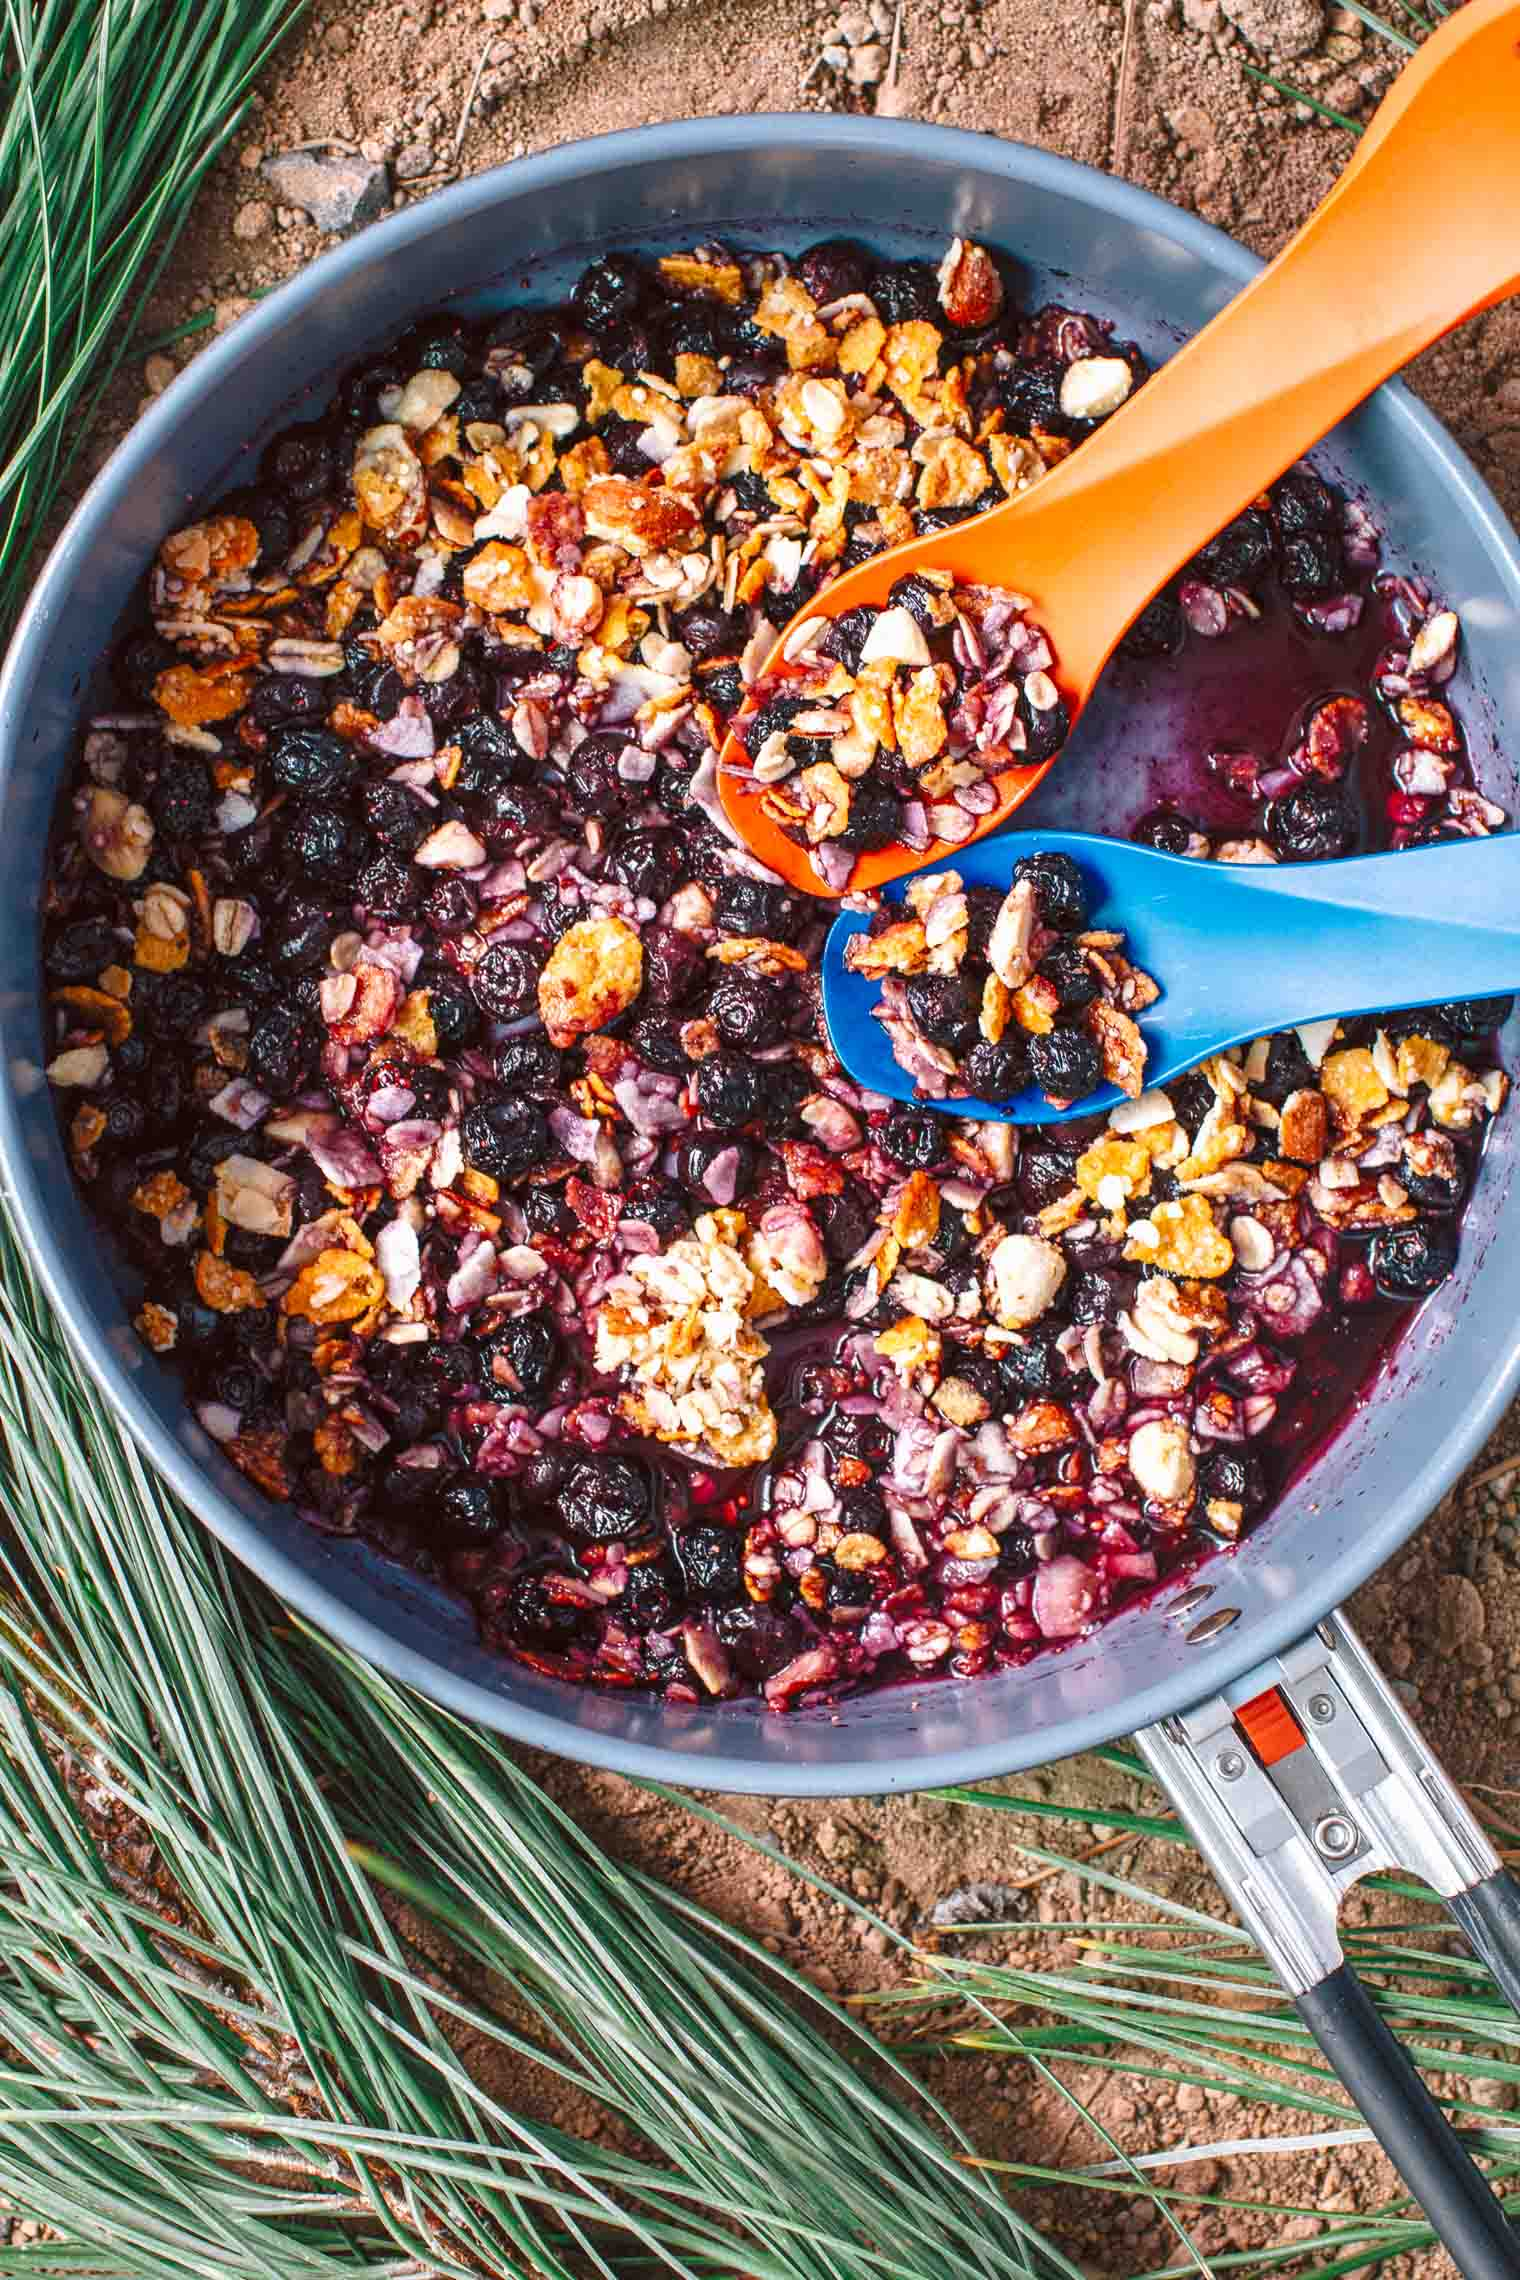 What better way to end a day of backpacking than with a homemade dessert? Get the recipe for this Backpacker's Blueberry Crisp on freshoffthegrid.com